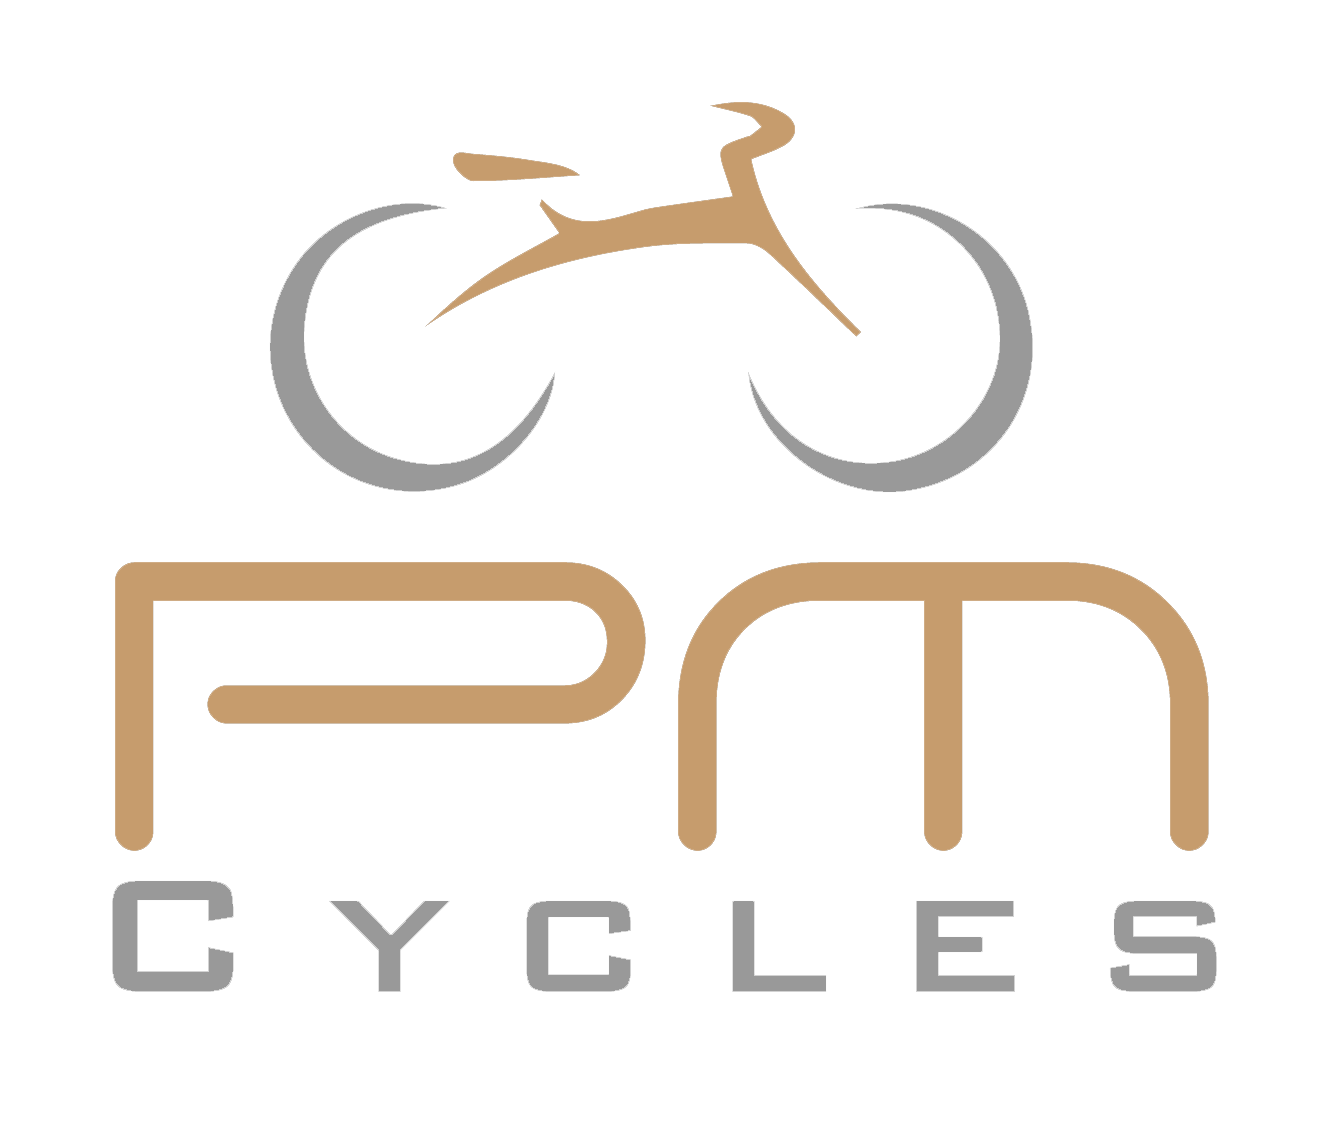 The PM Cycles